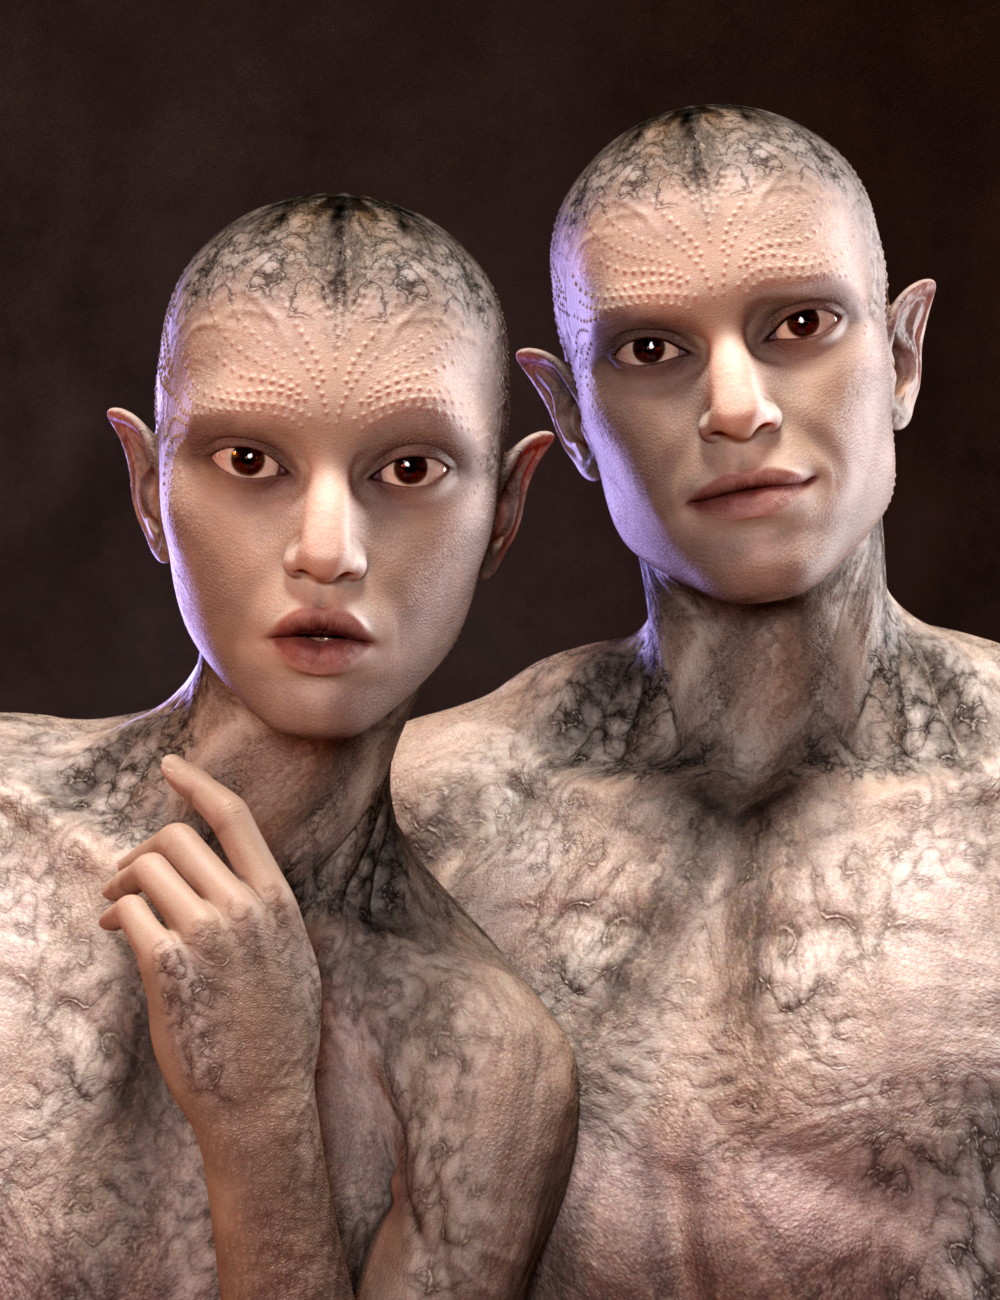 Calique and Calix HD for Genesis 8.1 Male by: Vyusur, 3D Models by Daz 3D